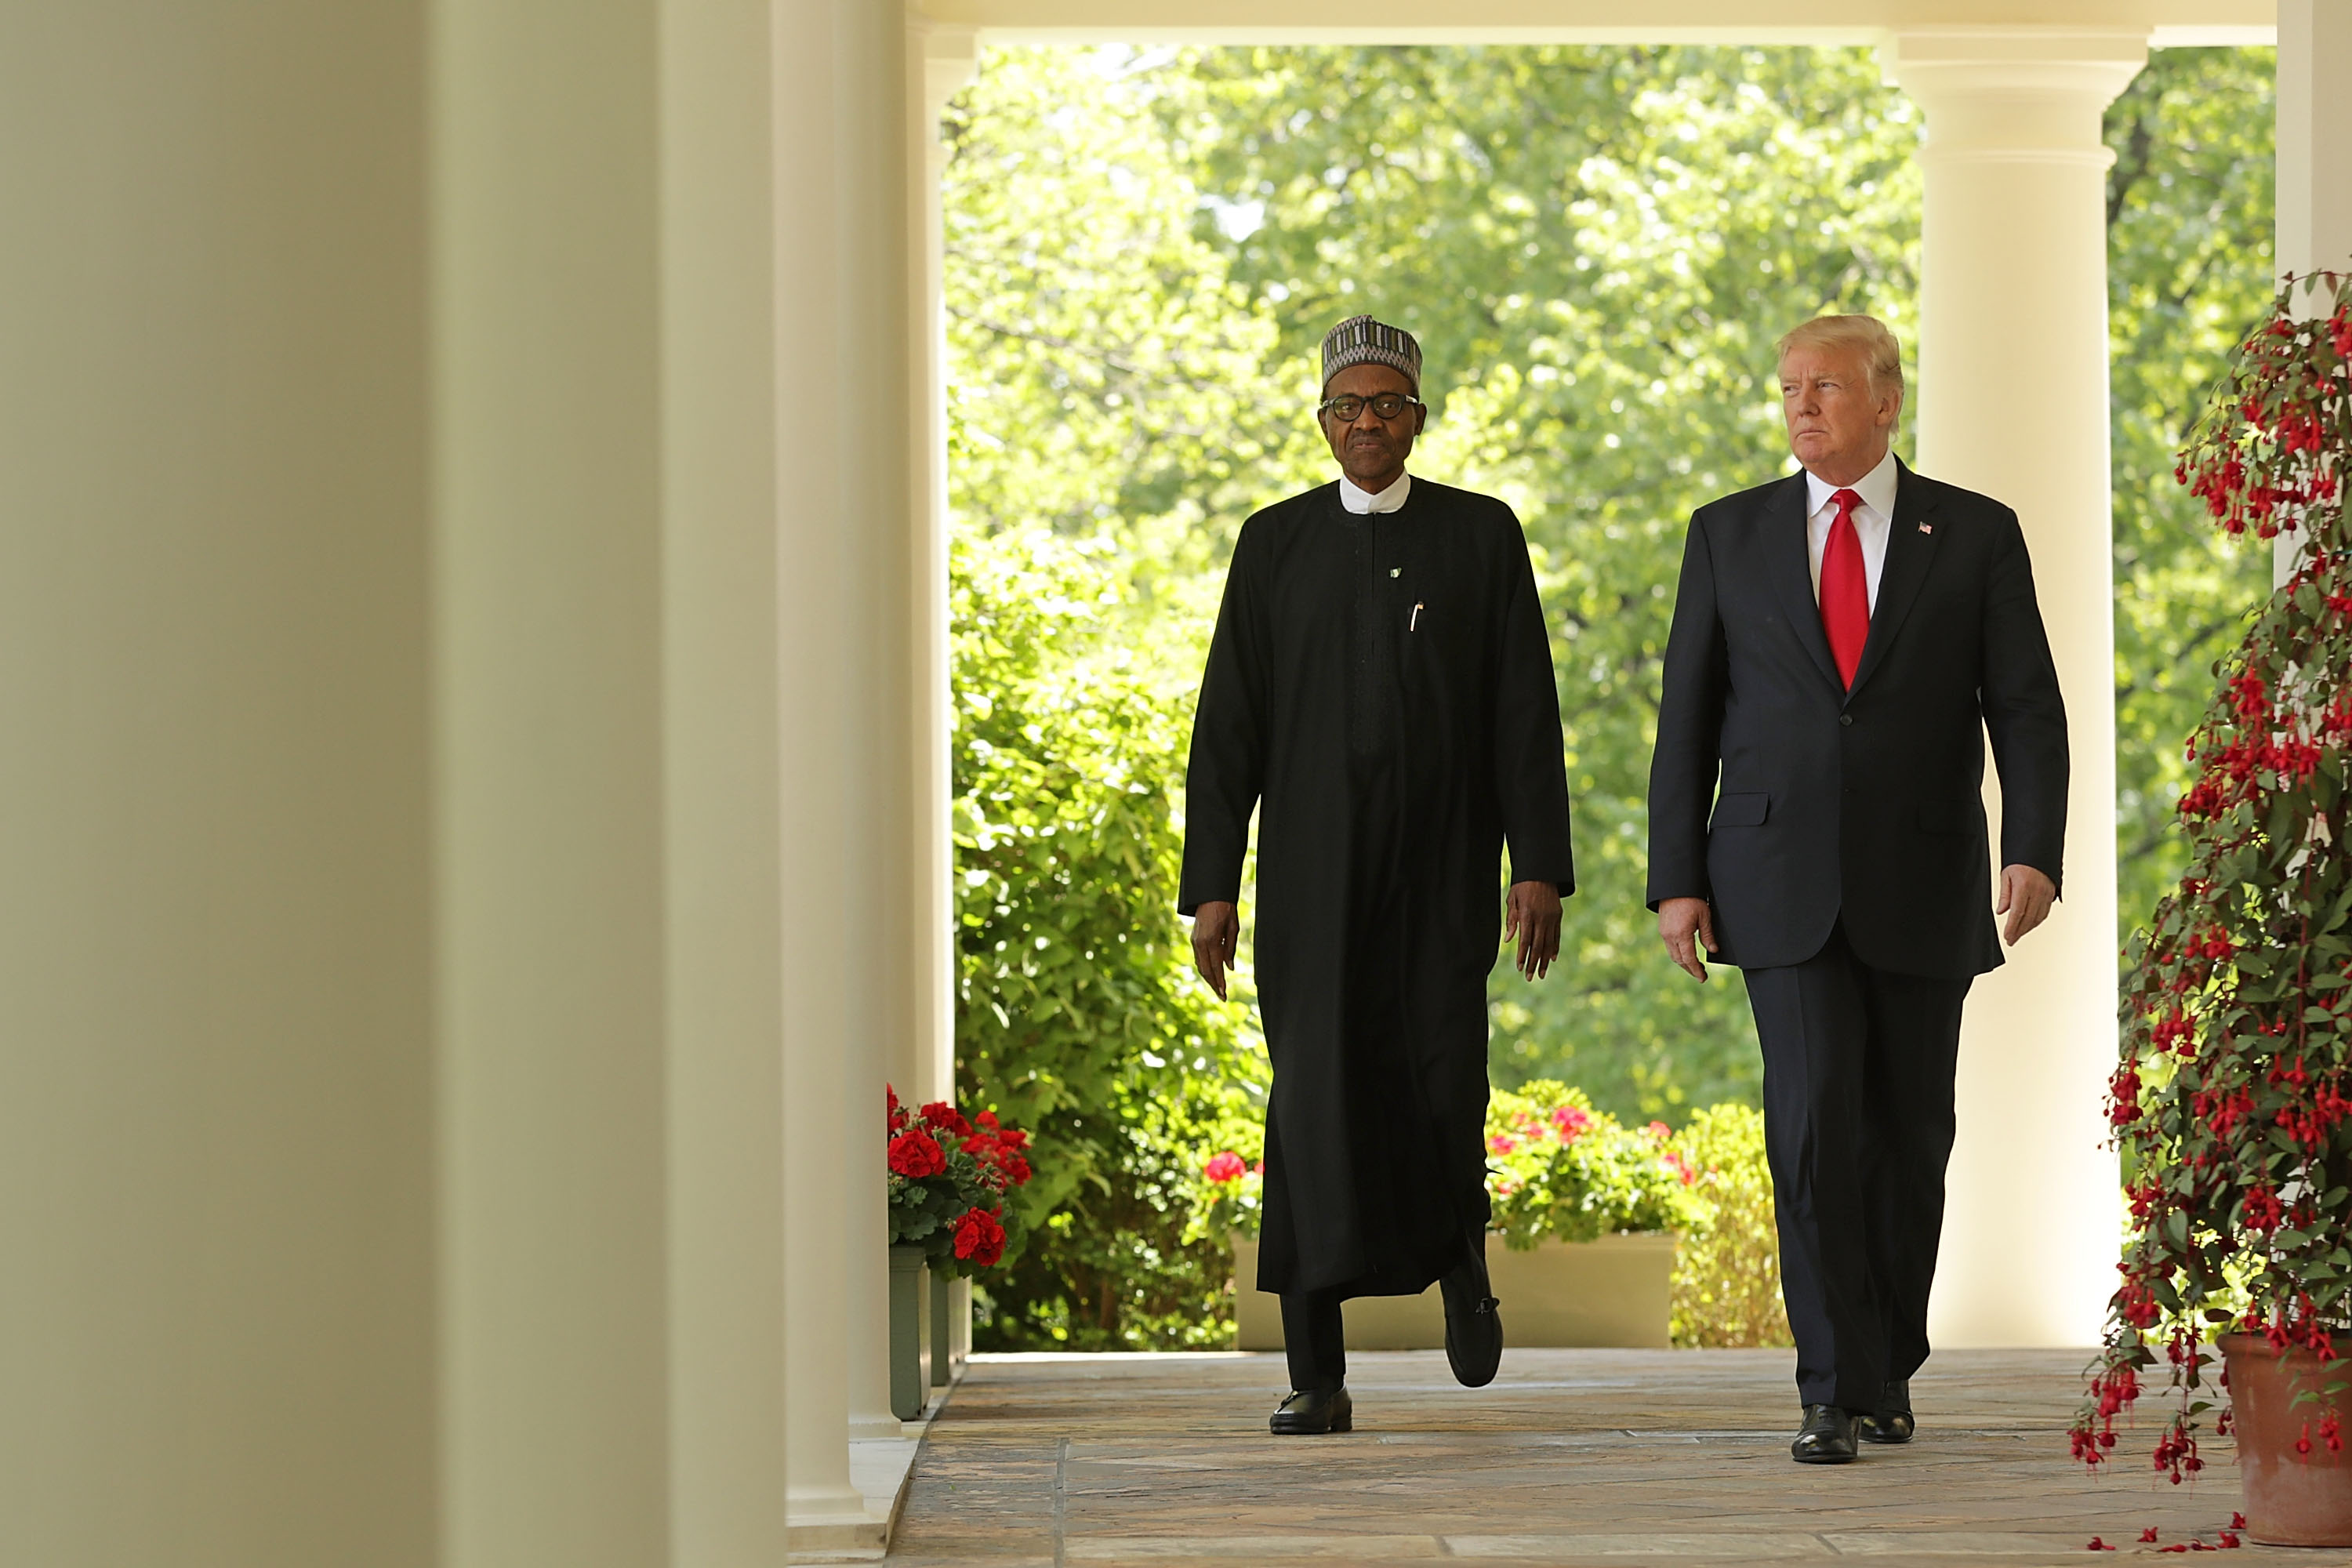 WASHINGTON, DC - APRIL 30: U.S. President Donald Trump (R) and Nigerian President Muhammadu Buhari walk into the Rose Garden for a joint press conference at the White House April 30, 2018 in Washington, DC. The two leaders also met in the Oval Office to discuss a range of bilateral issues earlier in the day. (Photo by Chip Somodevilla/Getty Images)